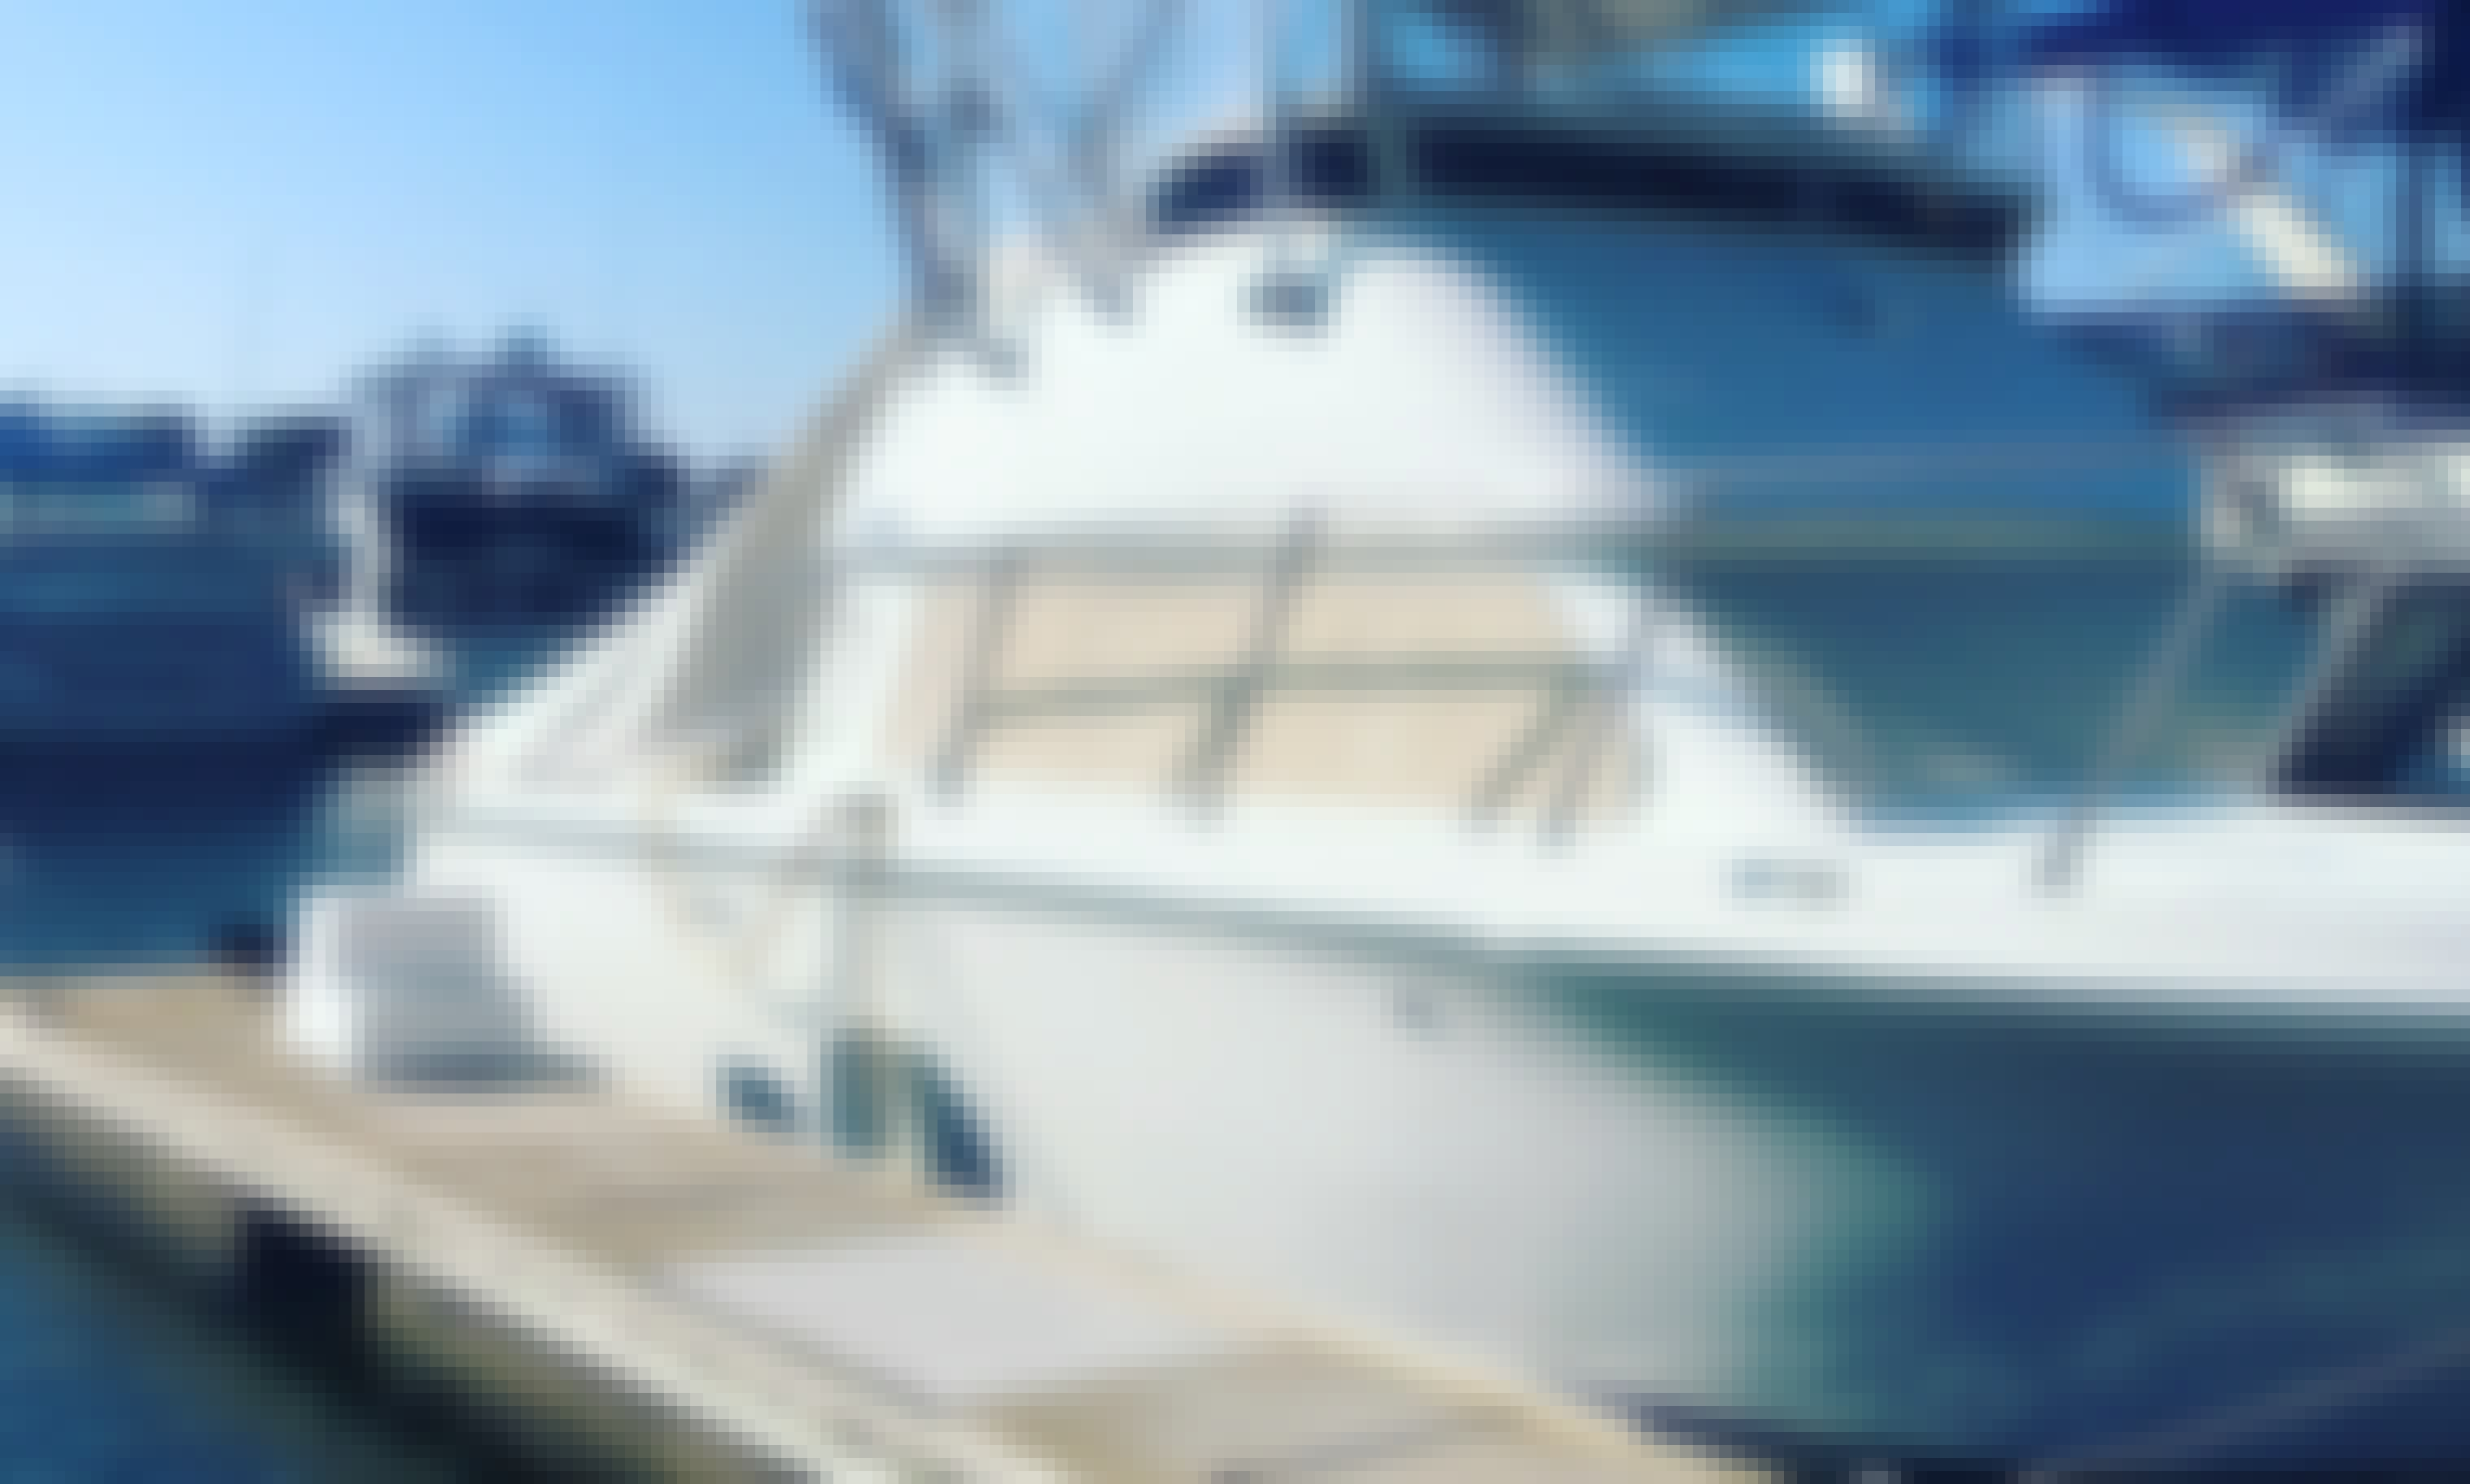 Captained Motor Yacht Charter For 10 People in Huntington Beach, California